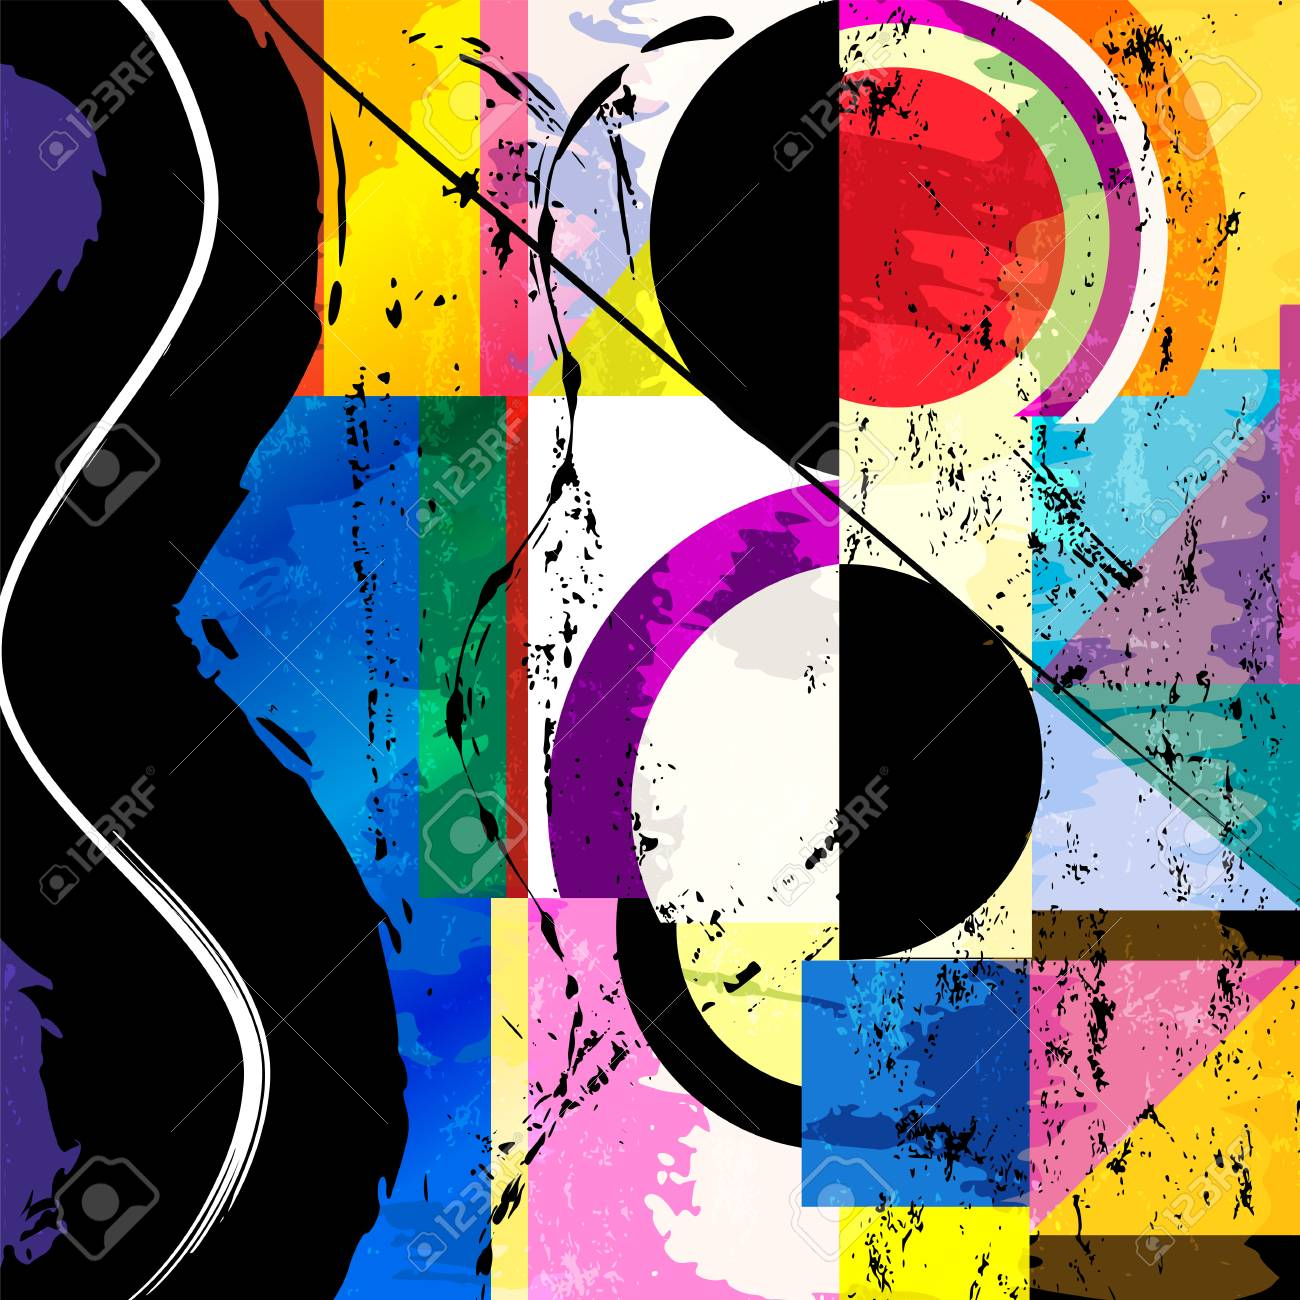 abstract circle background, retro/vintage style with paint strokes and splashes - 103826269